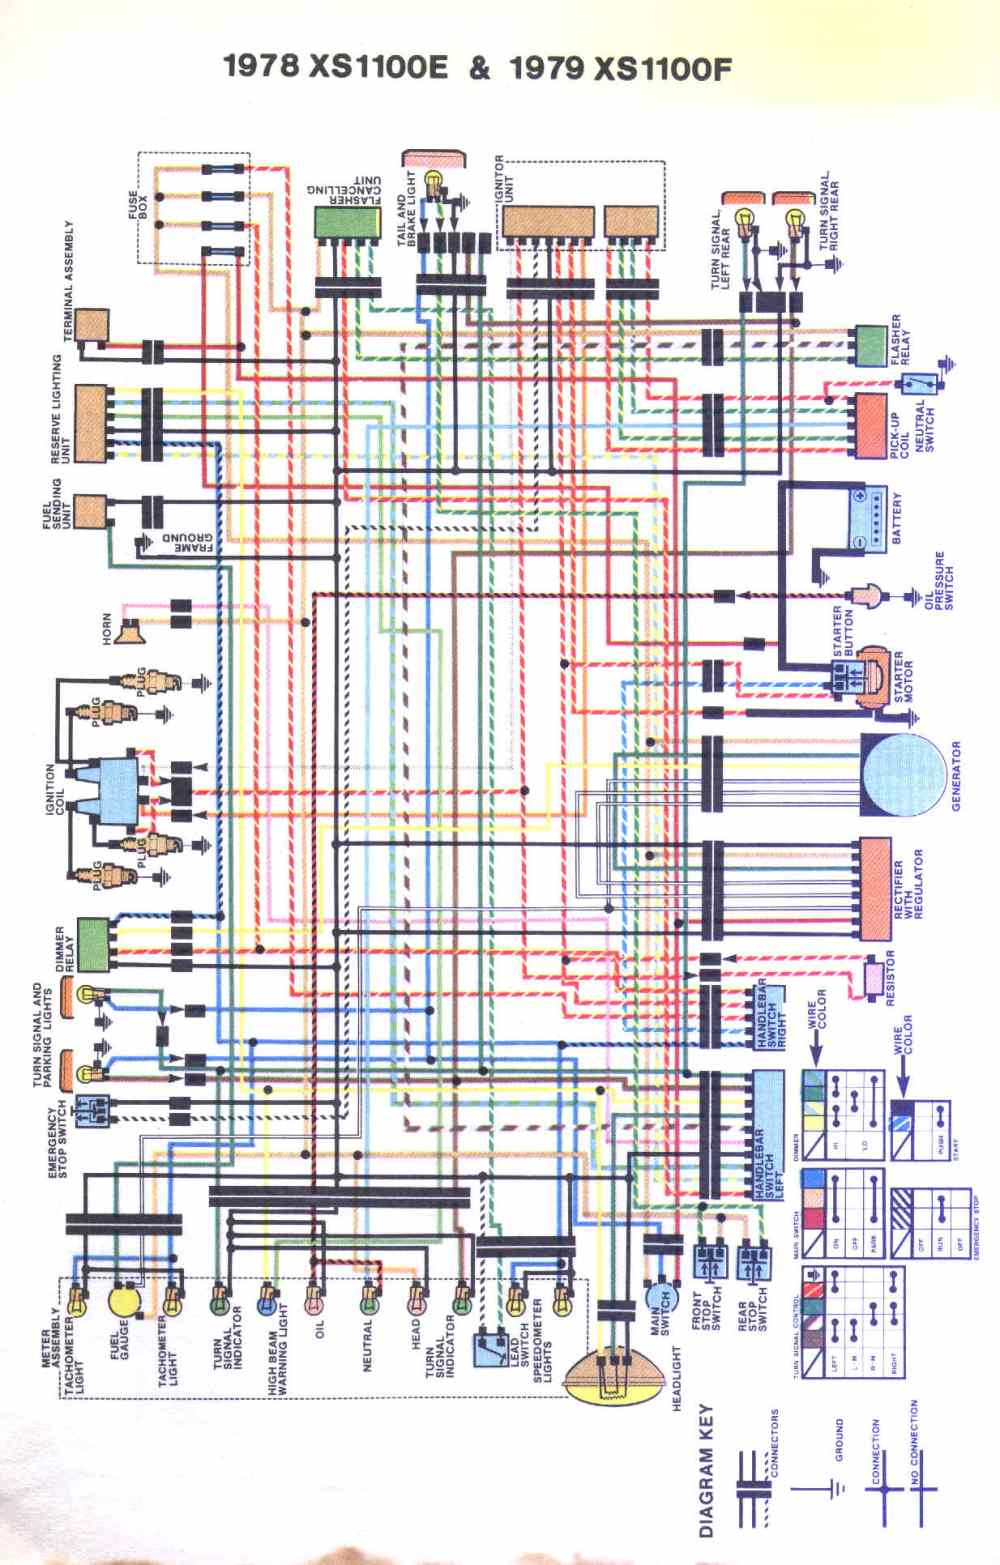 medium resolution of xs1100 wiring diagram simple wiring post1979 yamaha xs1100 wiring diagram trusted wiring diagram electrical wiring xs1100